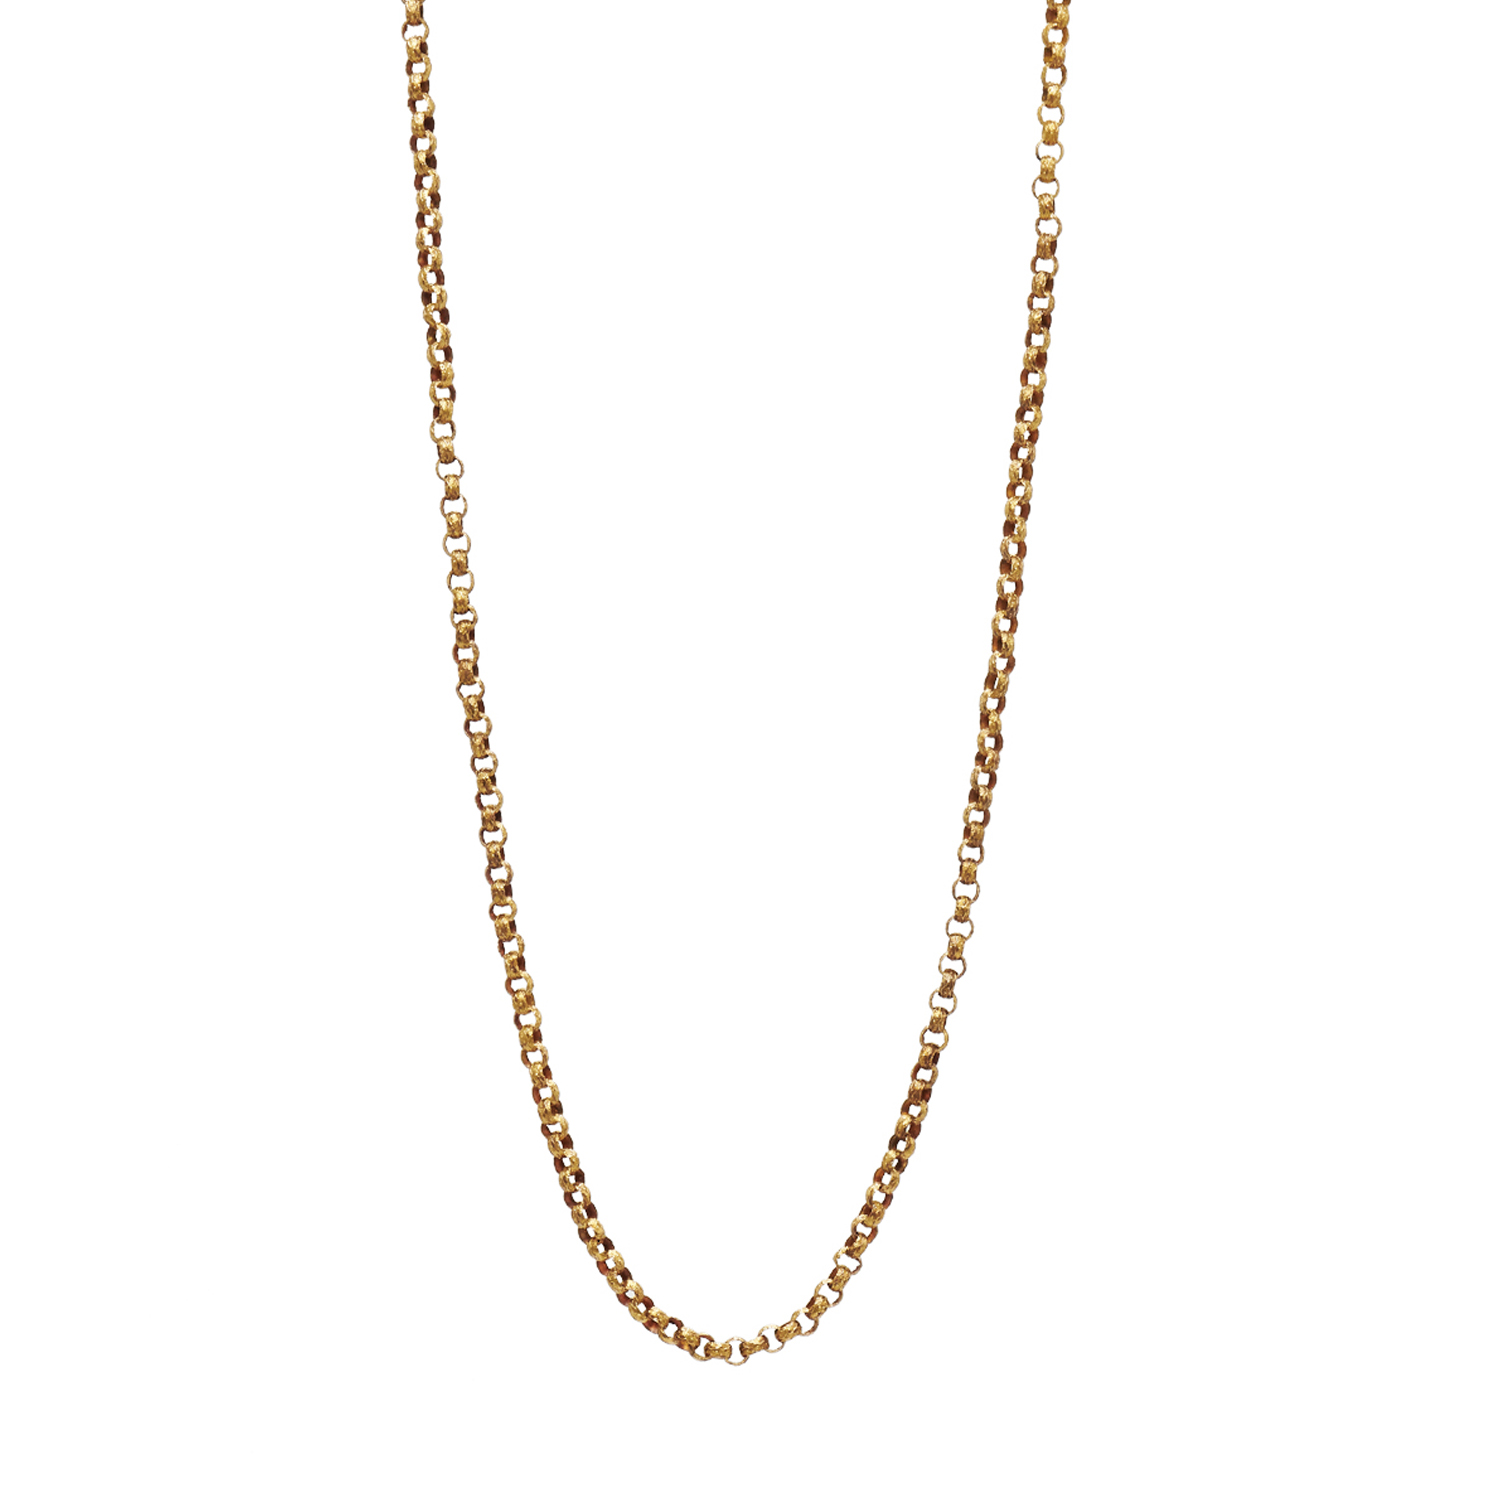 Georgian 18K Yellow Gold Embossed Link Necklace Style N-41223-FL-0-0